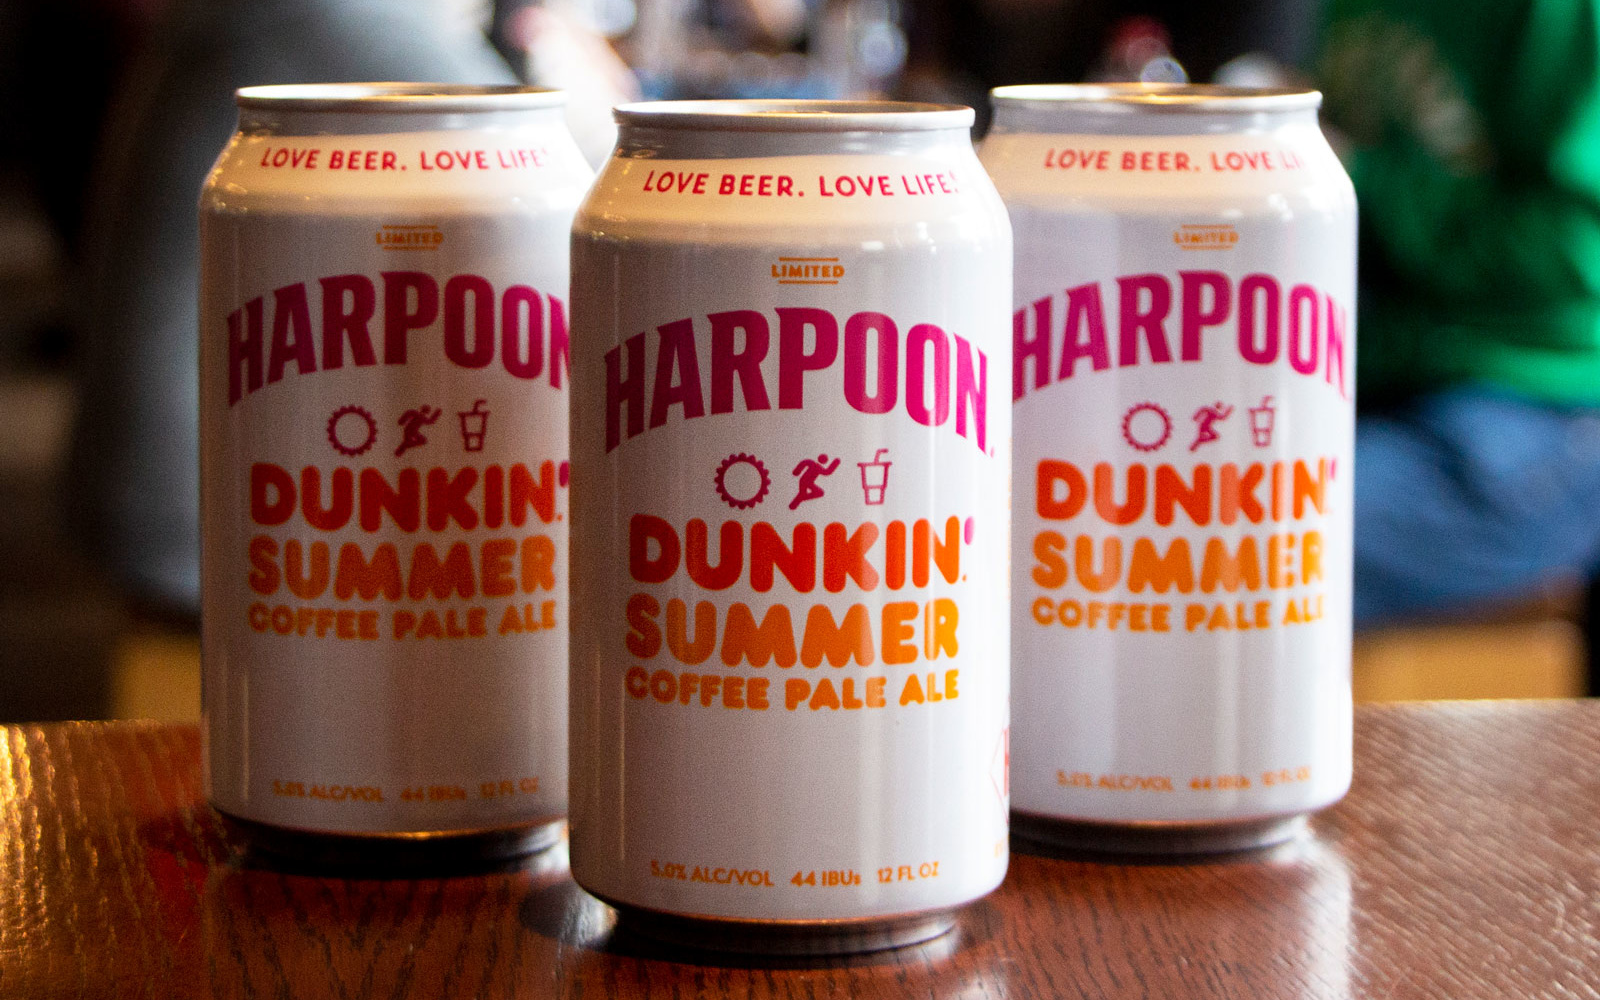 Harpoon Dunkin Summer Coffee Pale Ale